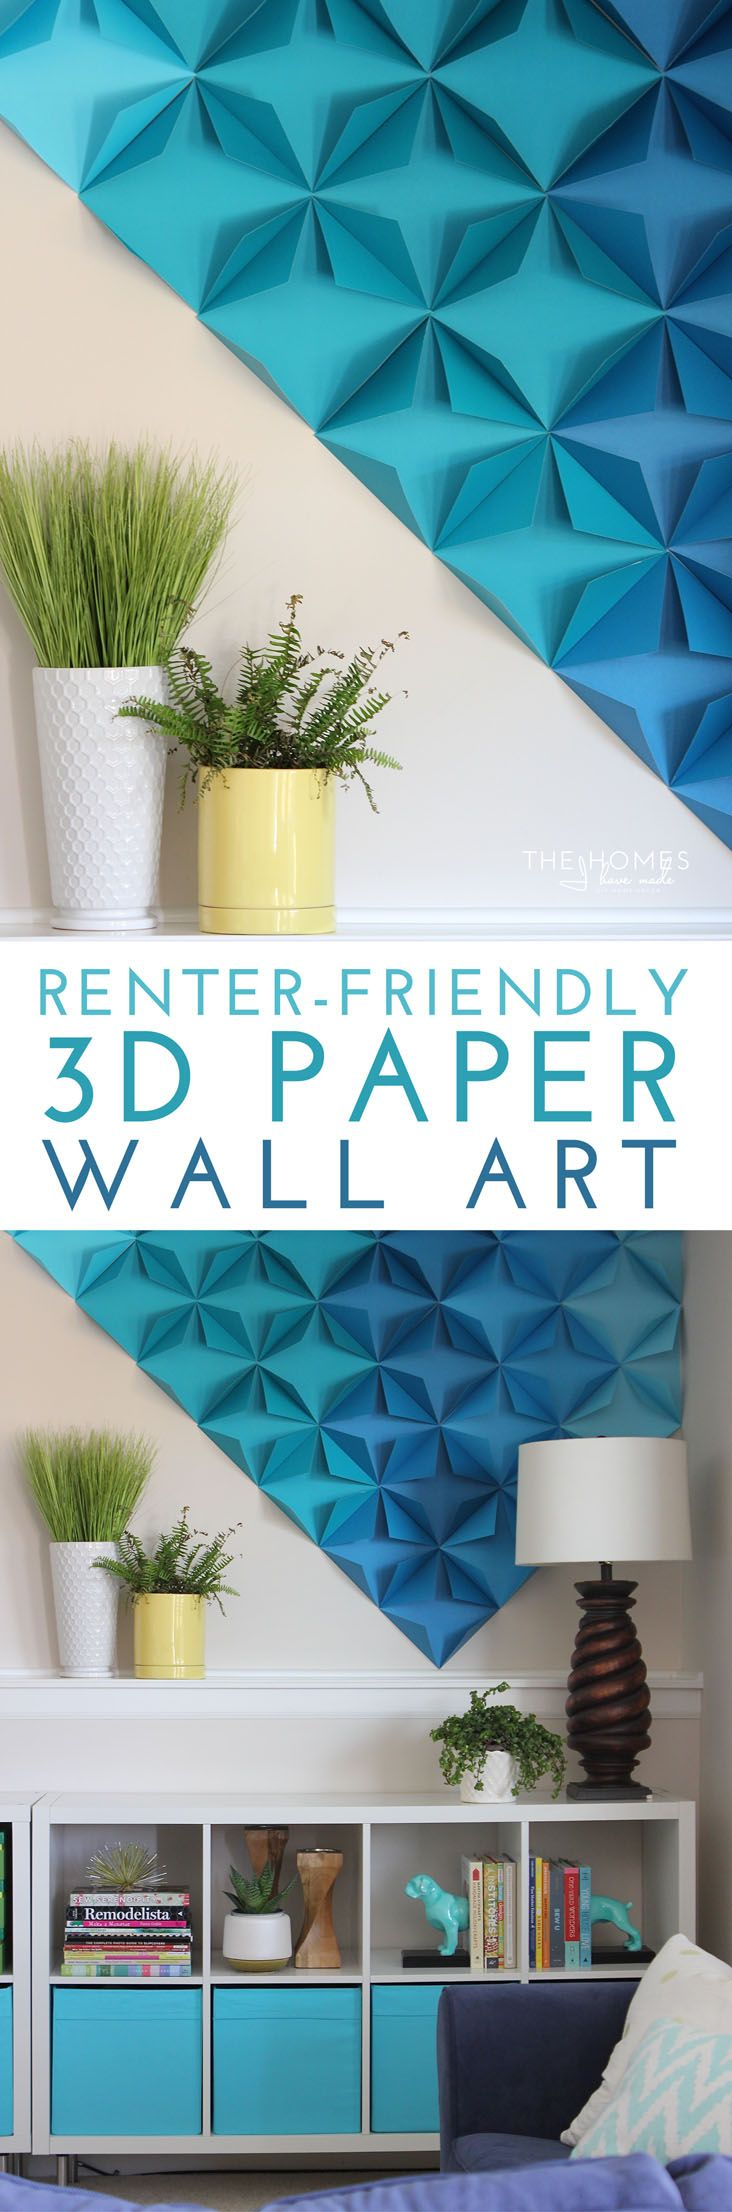 Best 20+ Paper wall art ideas on Pinterest